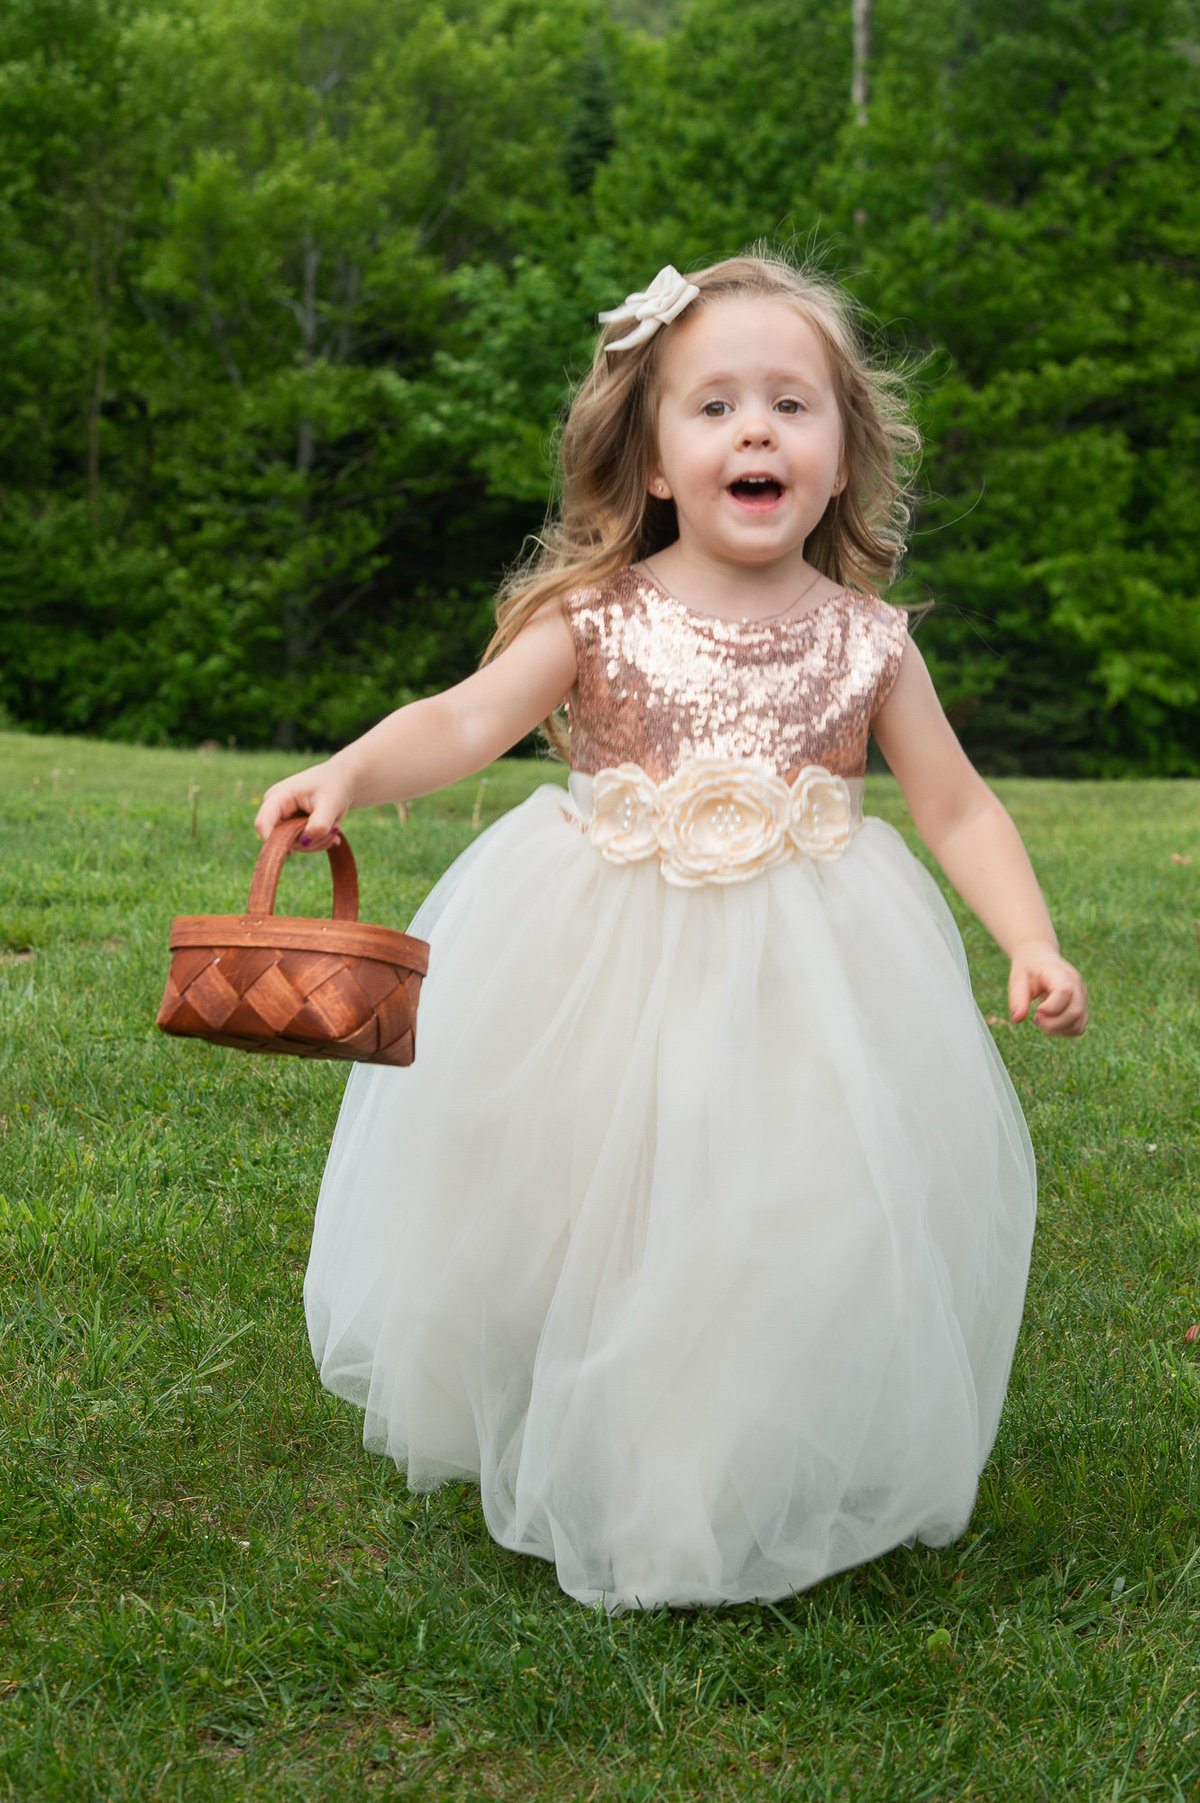 cutest flowergirl running down the aisle